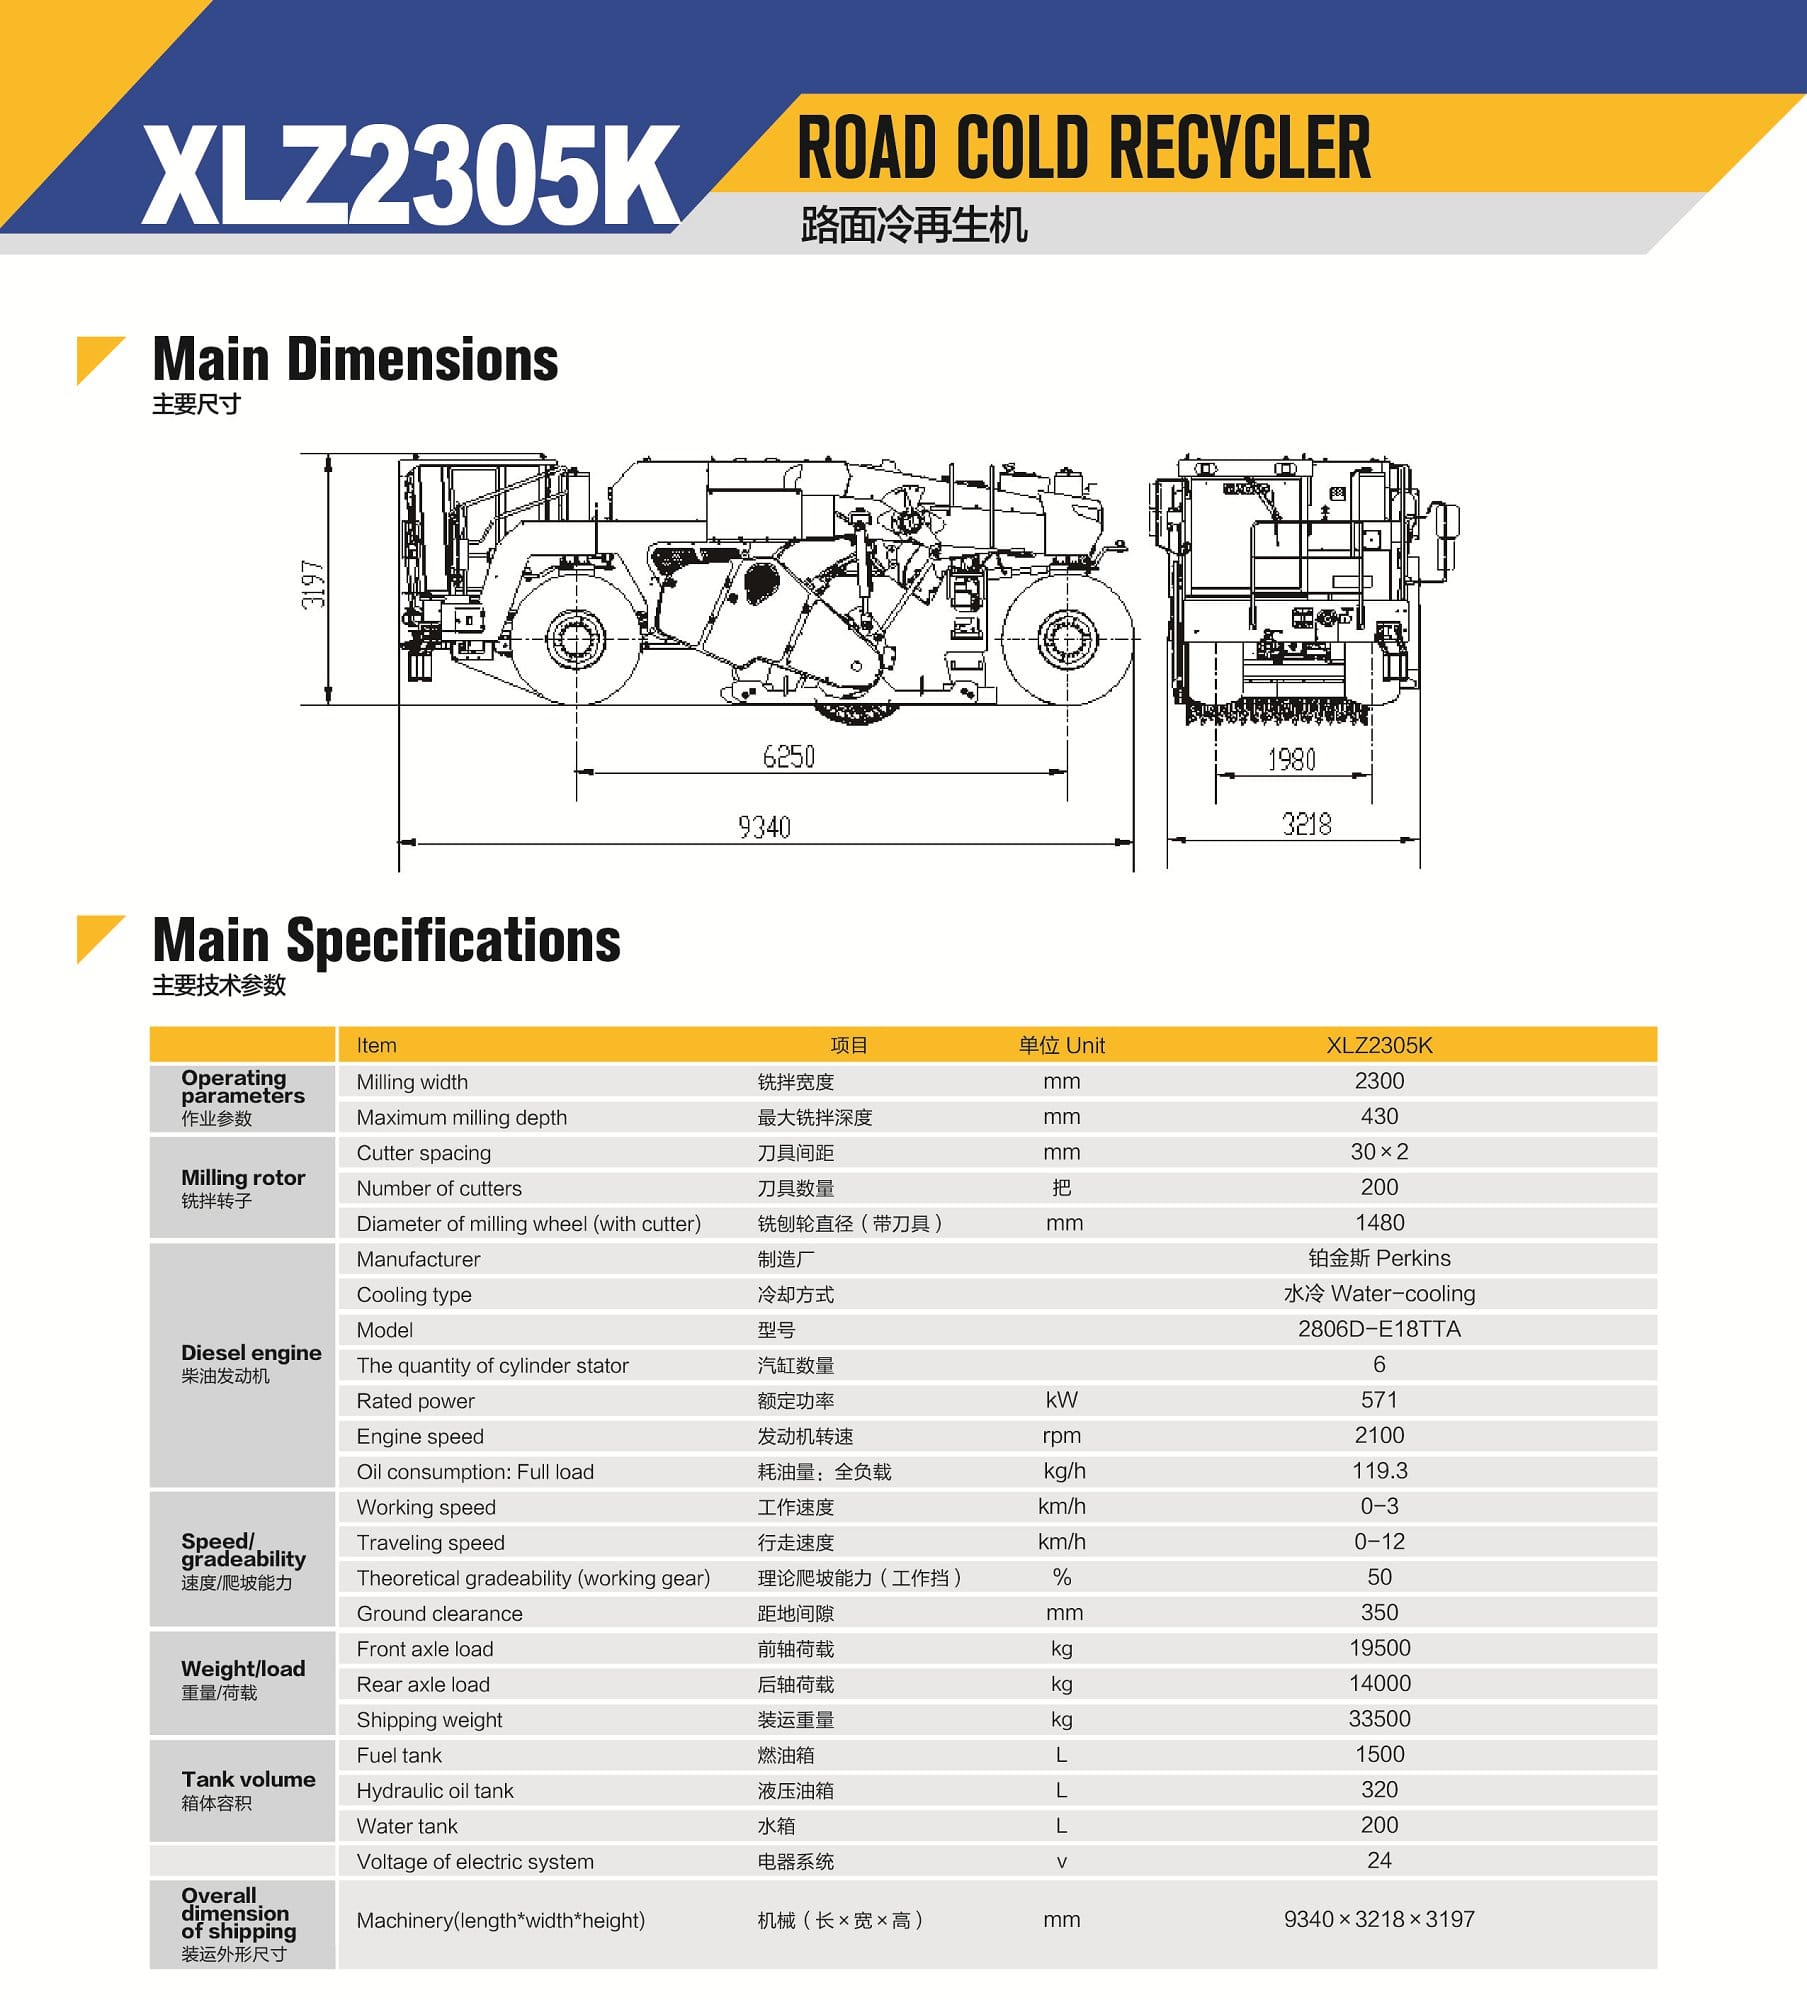 XCMG Official Road Cold Recycler XLZ2305K For Sale